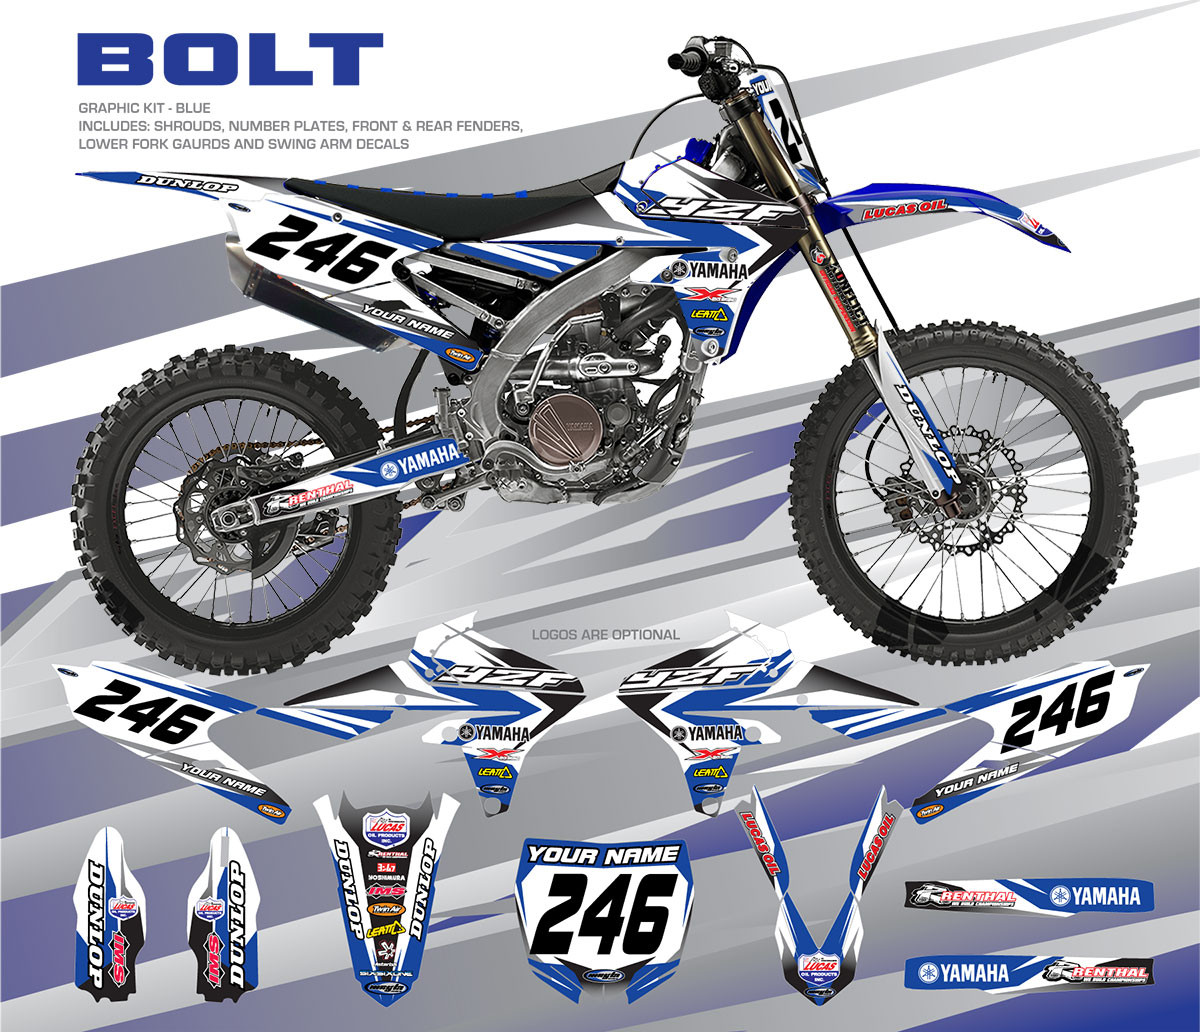 yamaha bolt graphic kit